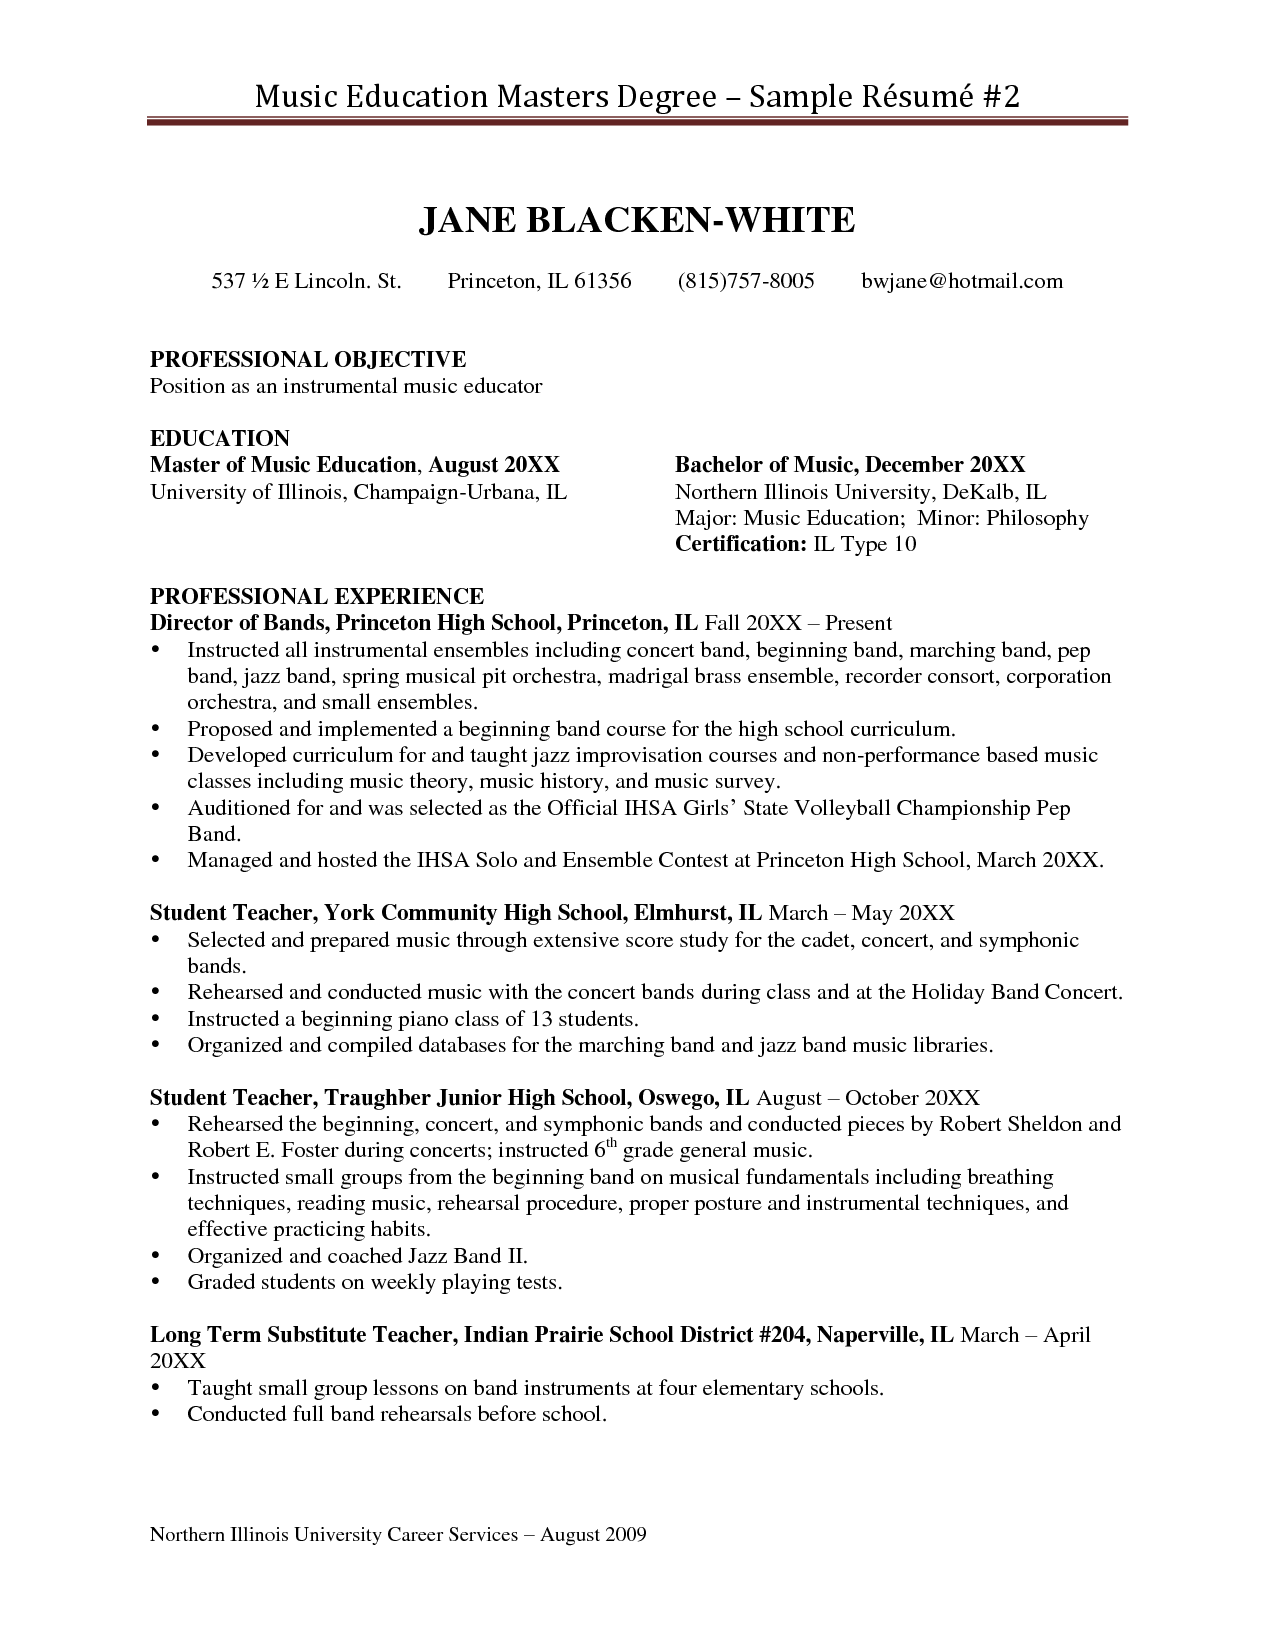 Example Of A Professional Resume Graduate Teachers Resume Example  Google Search  Getting A Job